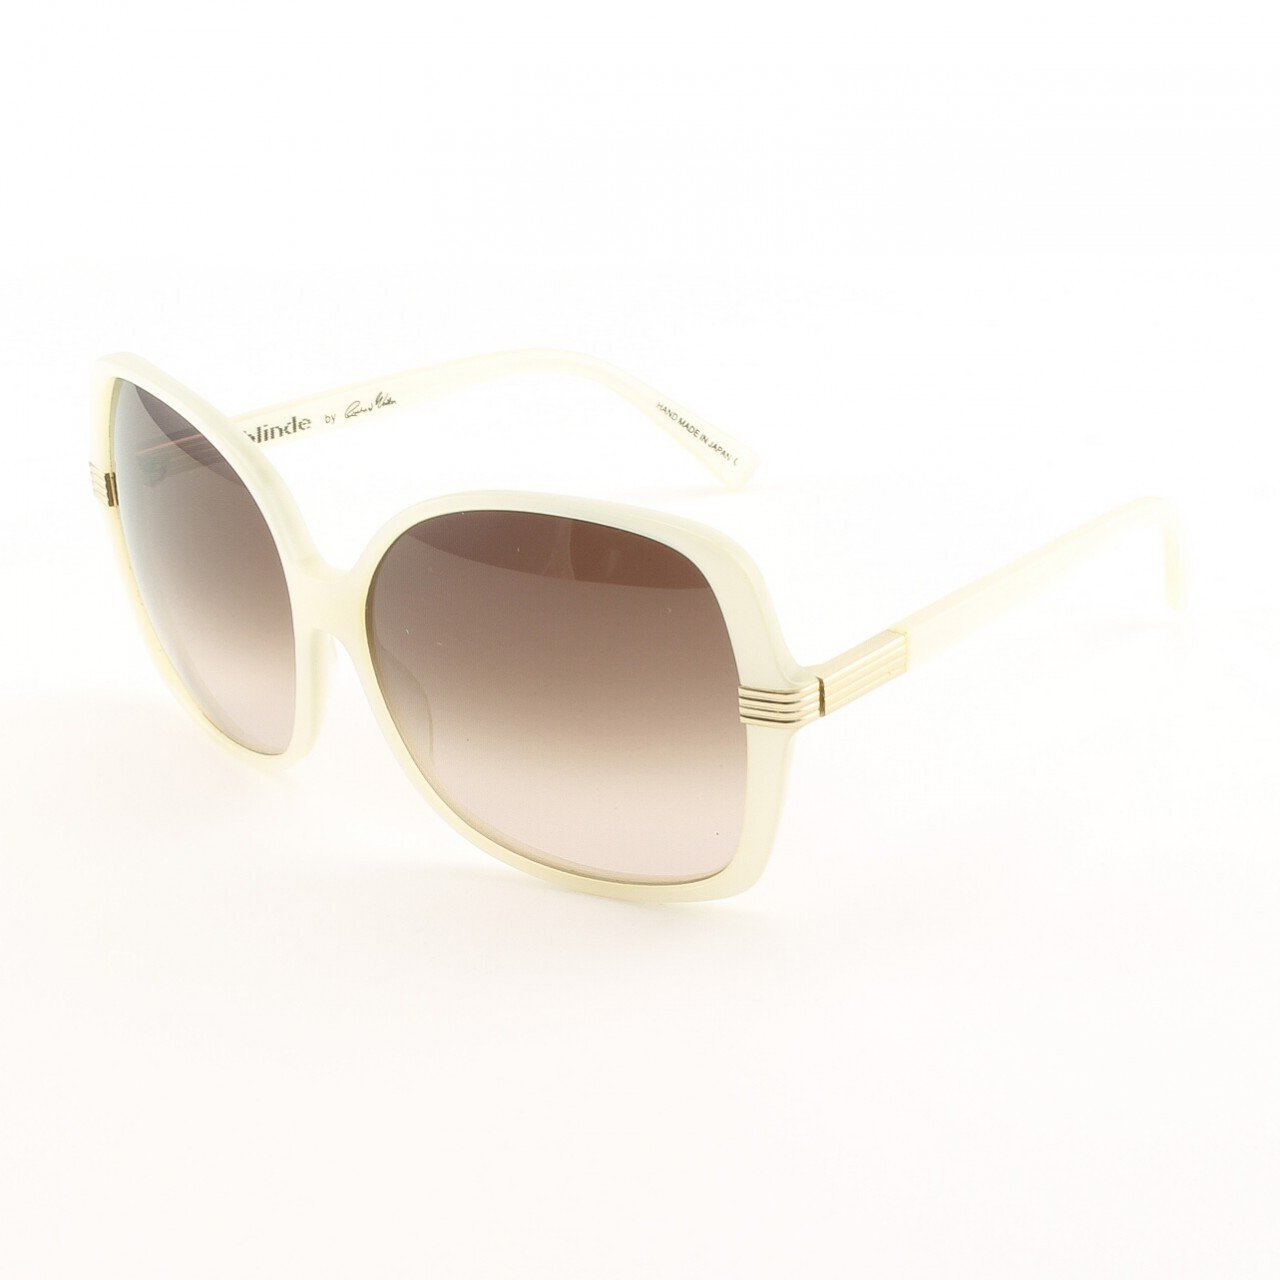 Blinde Swing Set Women's Sunglasses Col. White Pearl with Brown Gradient Lenses